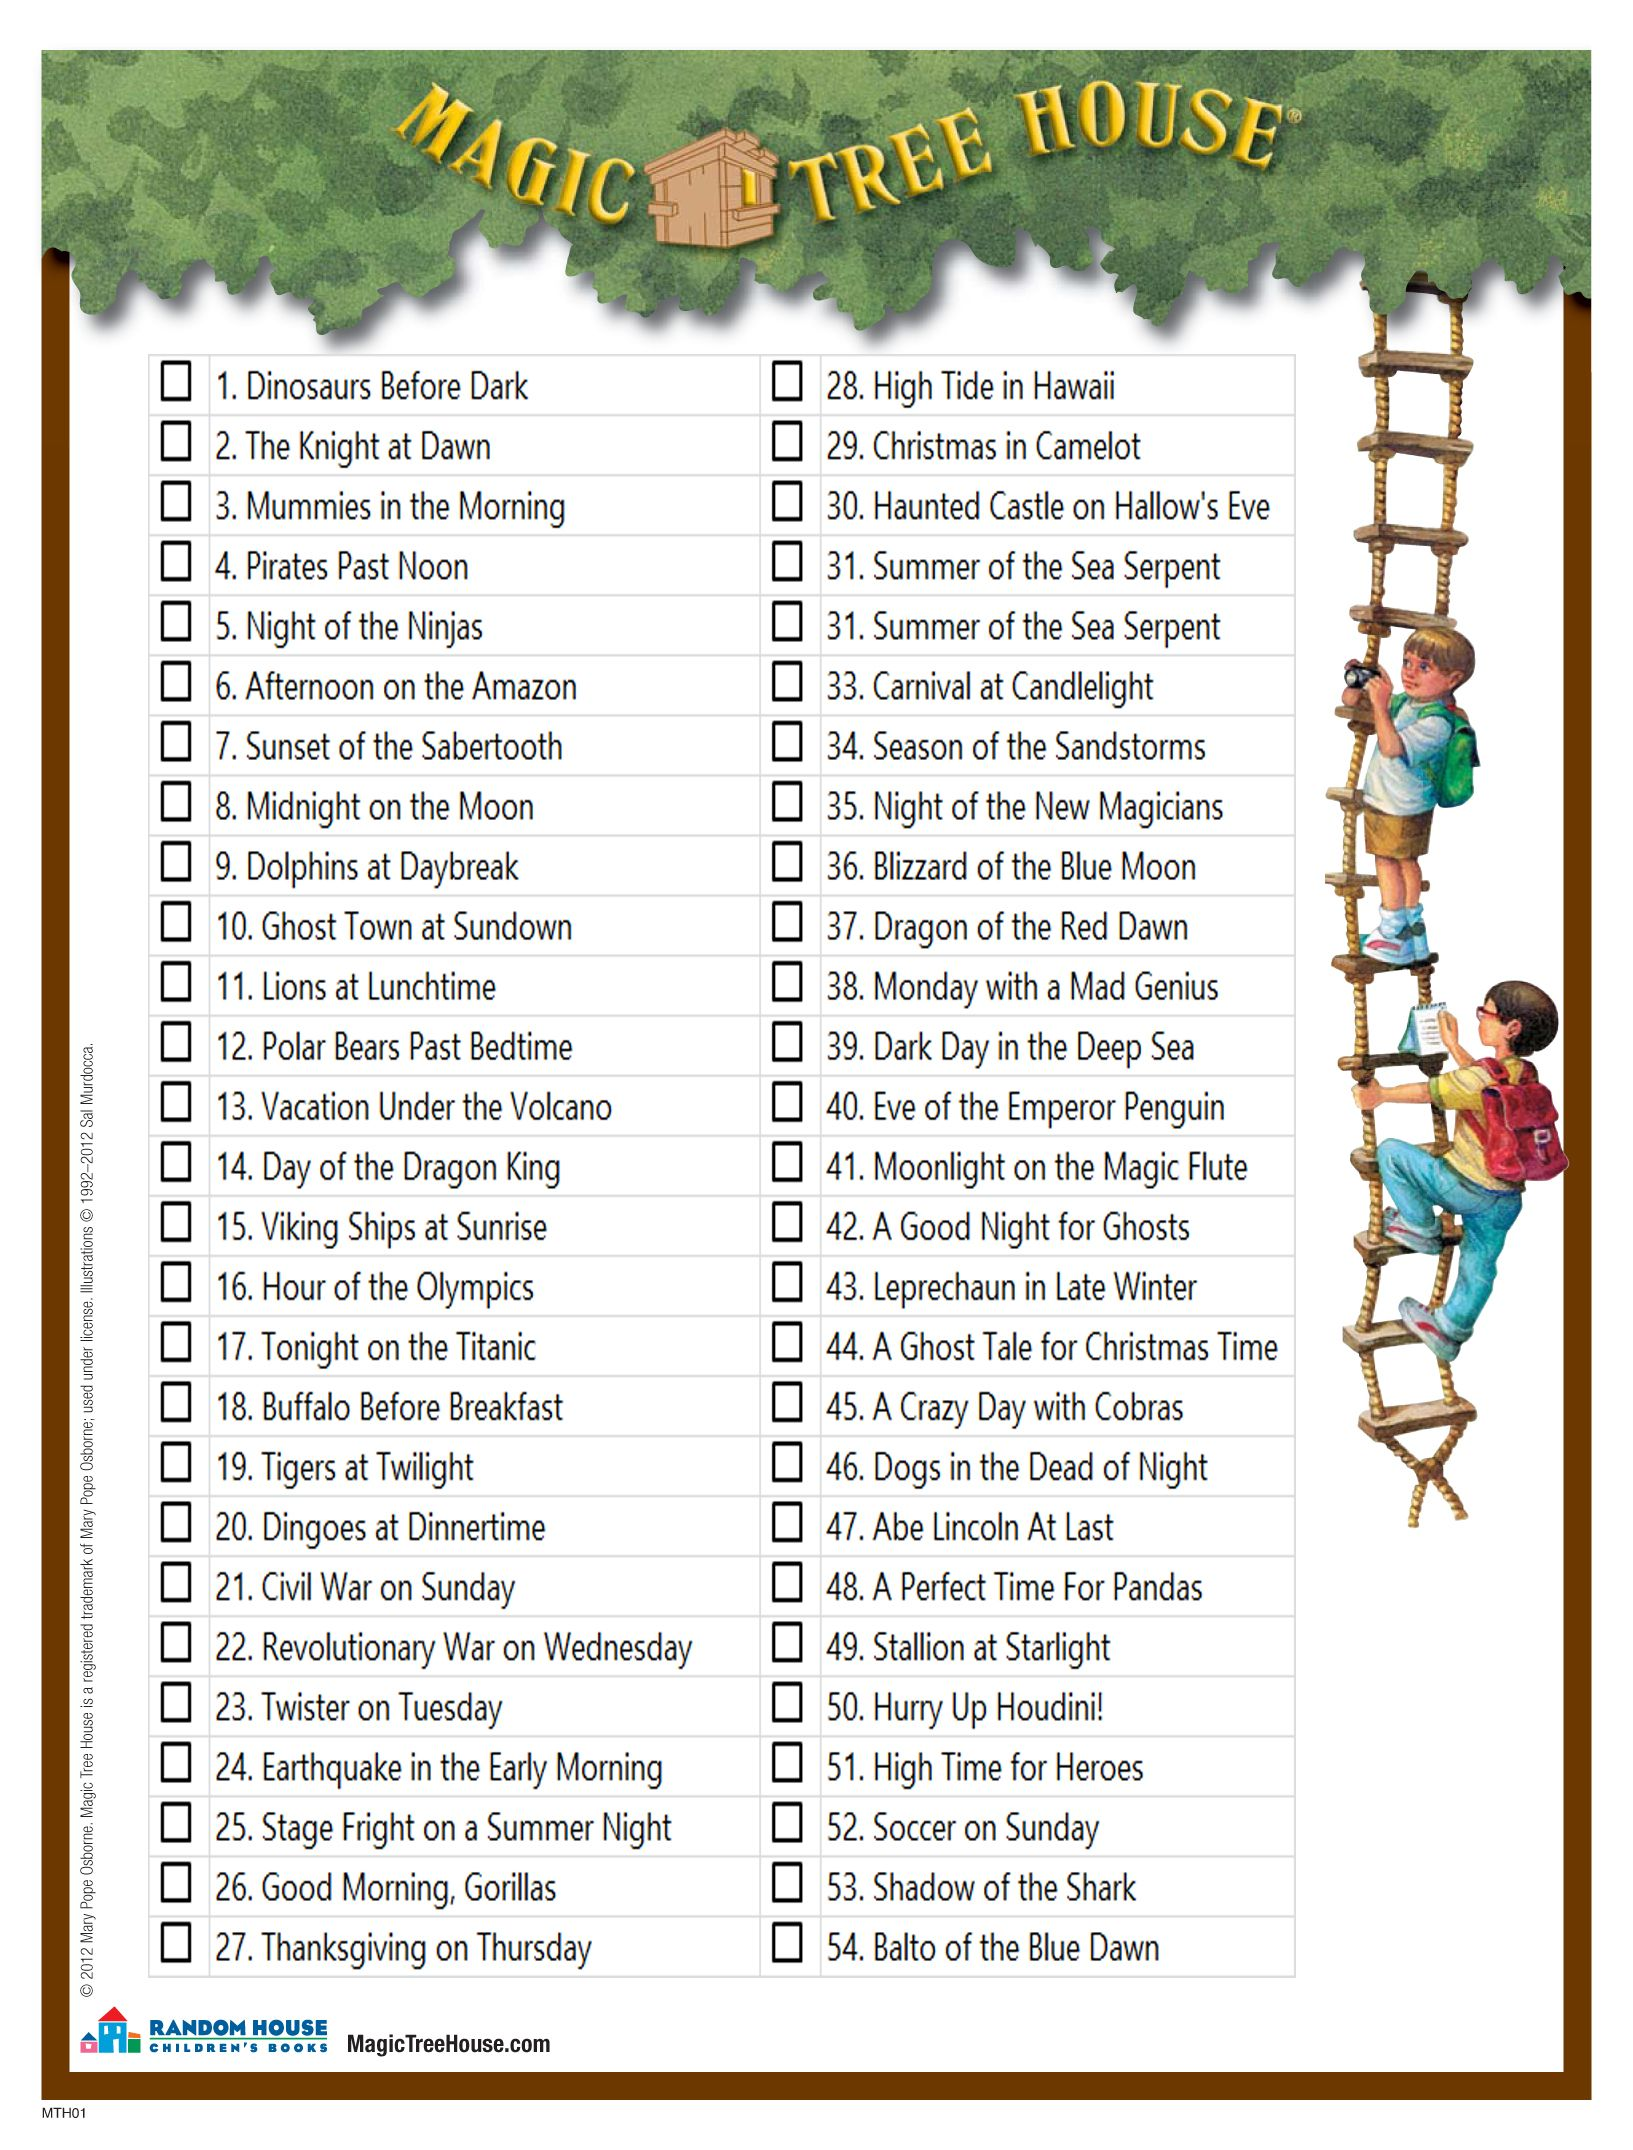 magic treehouse book list